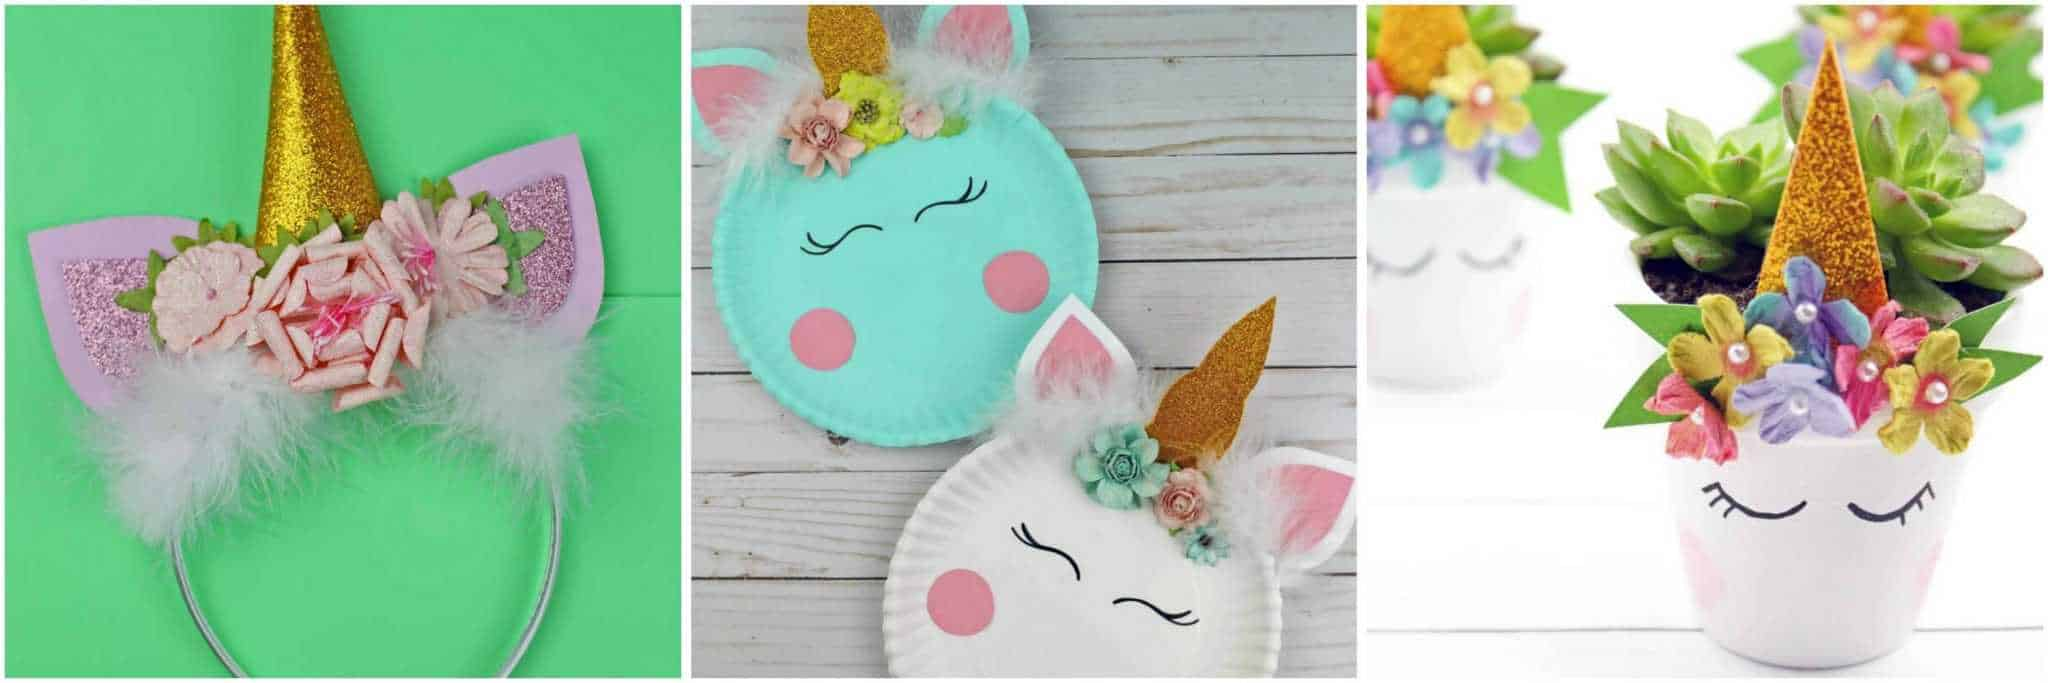 unicorn pictures and unicorn crafts 2